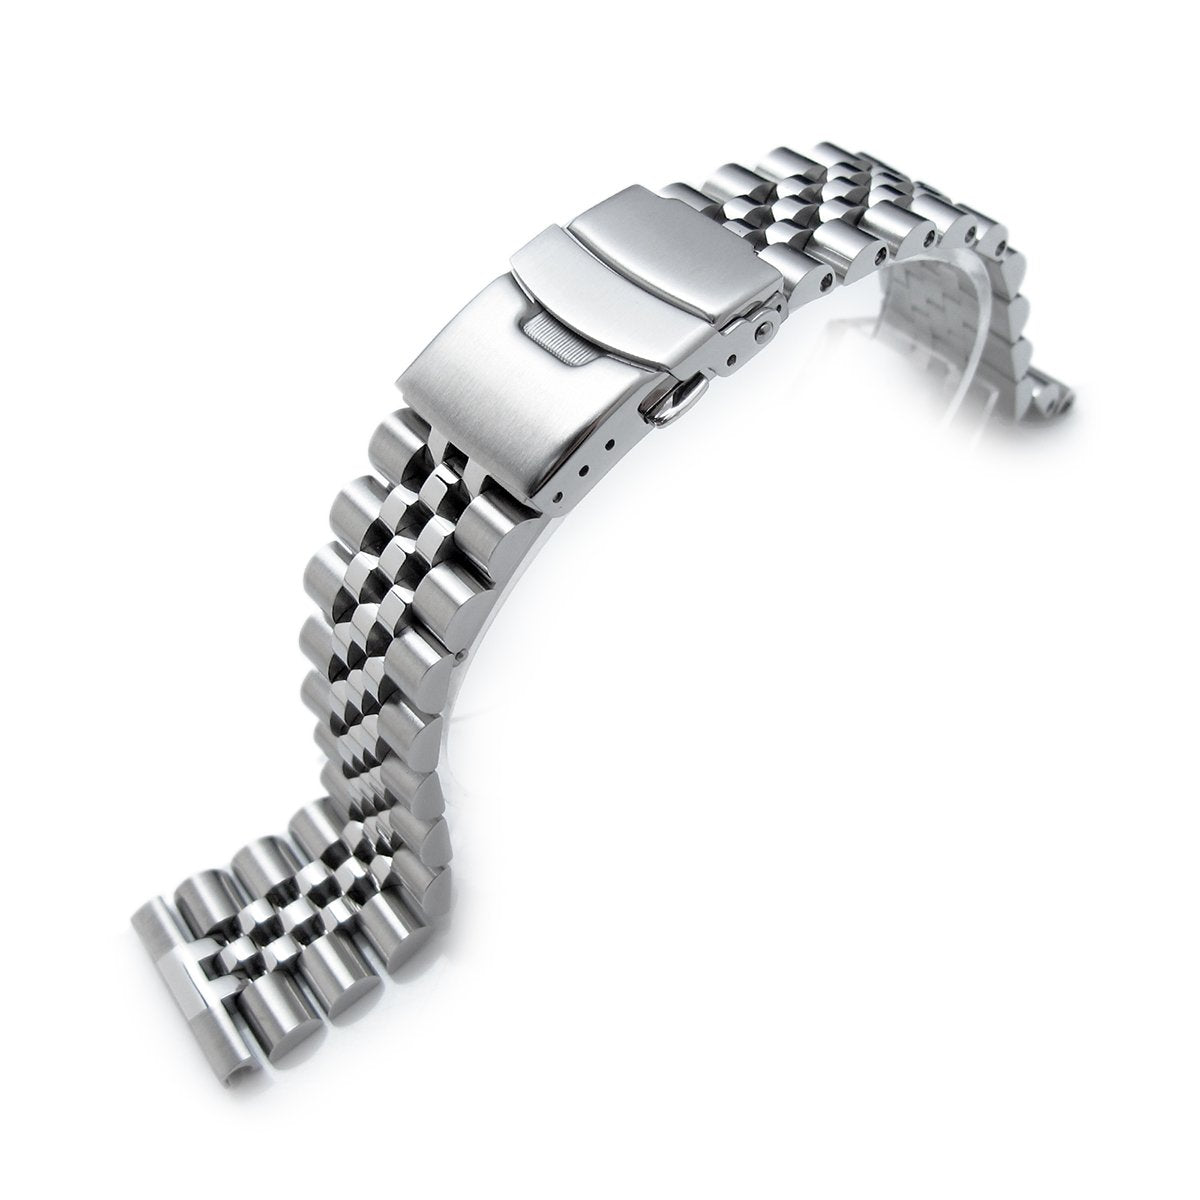 22mm Super-J Louis 316L Stainless Steel Watch Band Solid Straight End Diver Clasp Strapcode Watch Bands